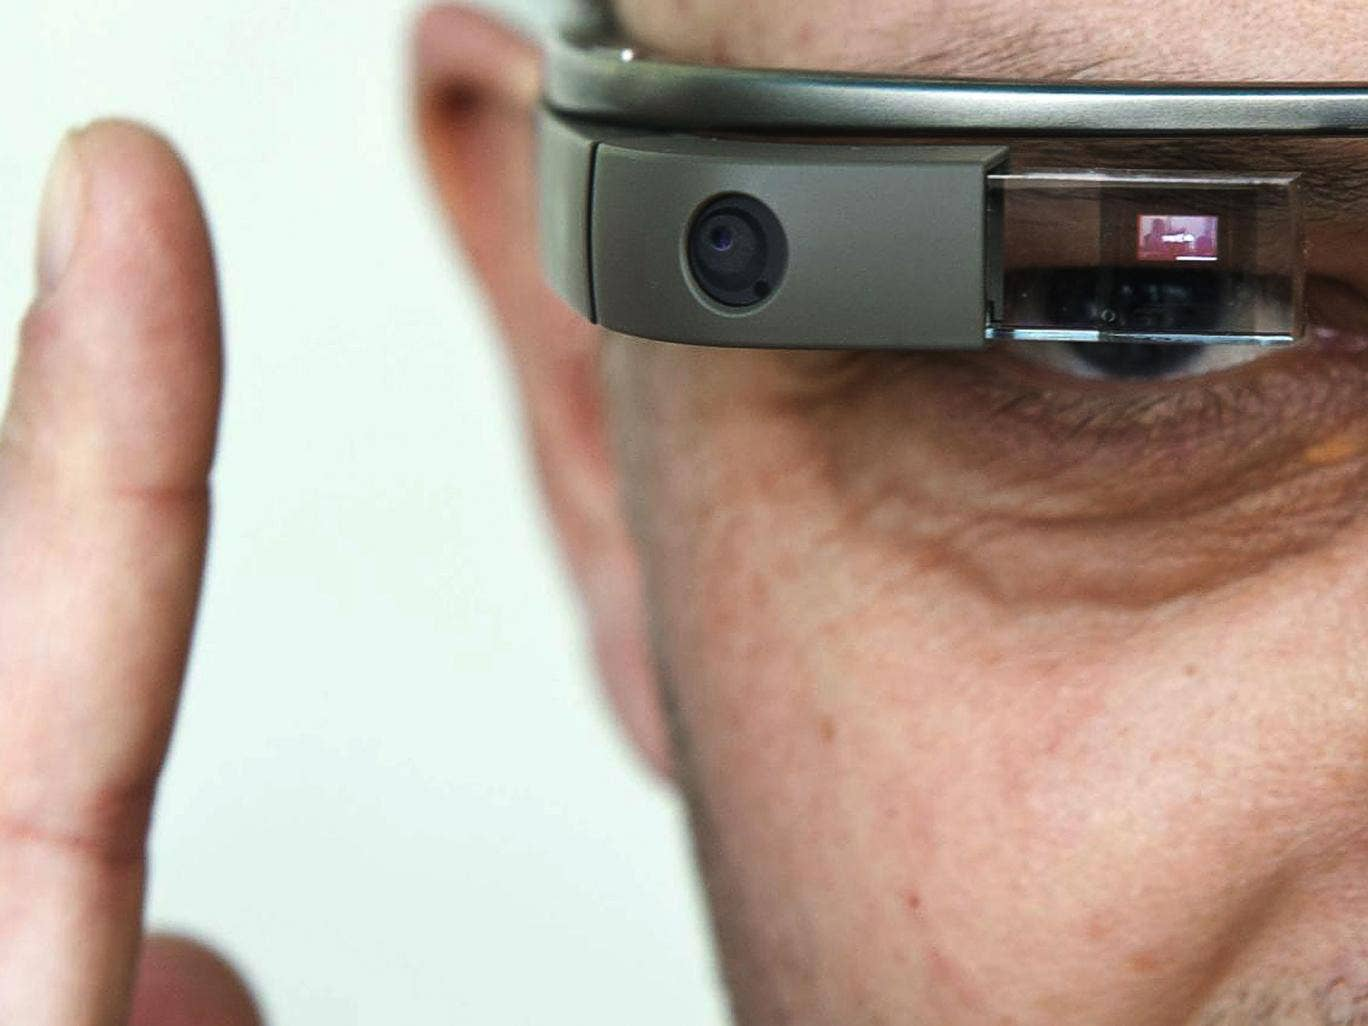 Google tells Glass early-adopters: 'Don't be a glasshole'